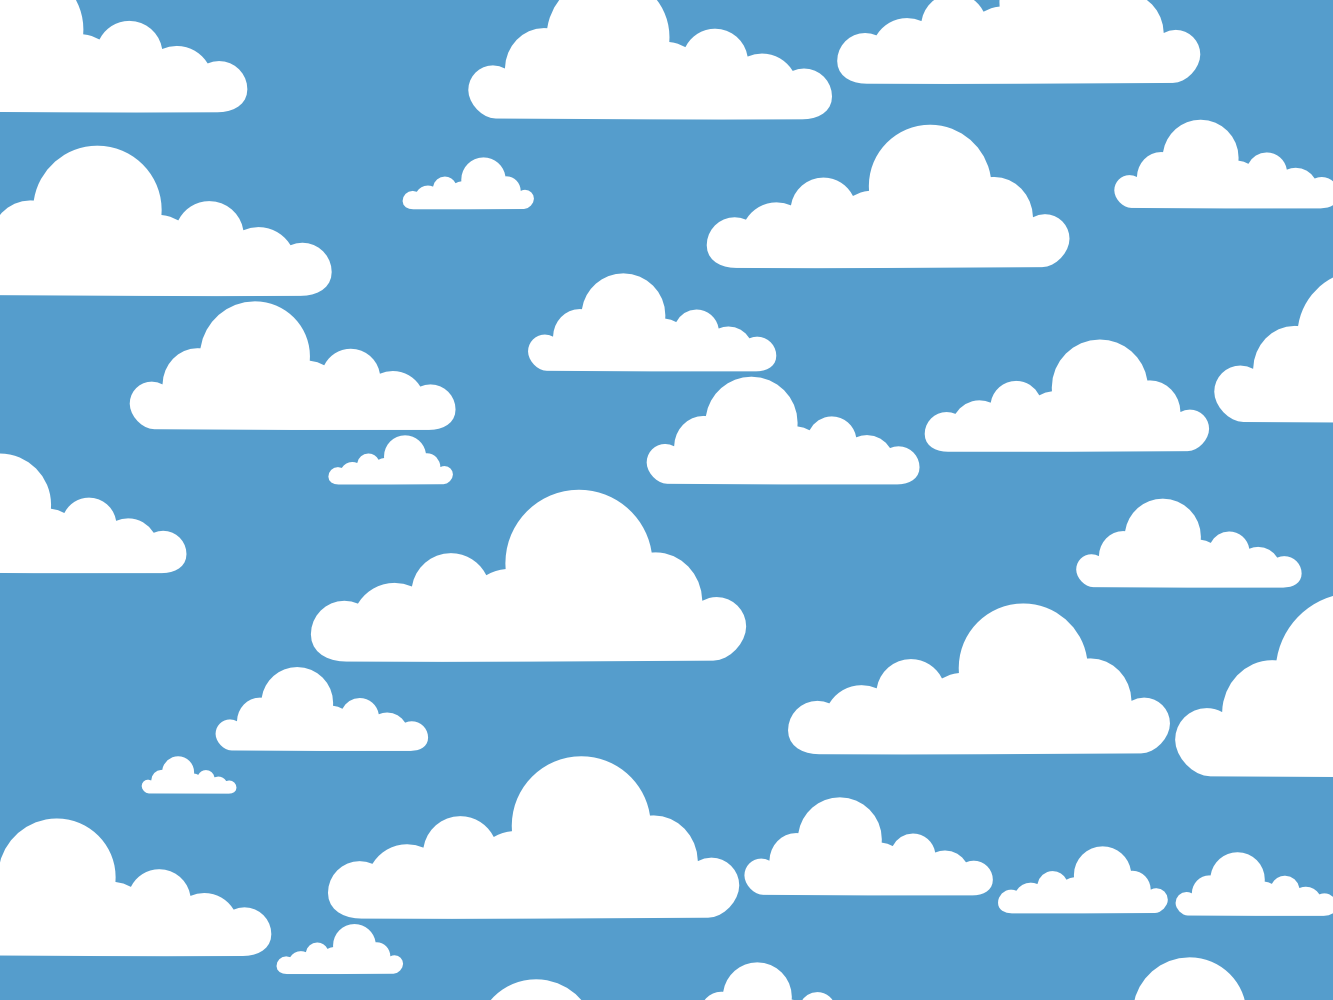 onlinelabels clip art simple clouds rh onlinelabels com clip art cloudy weather clip art clouds with sun rays